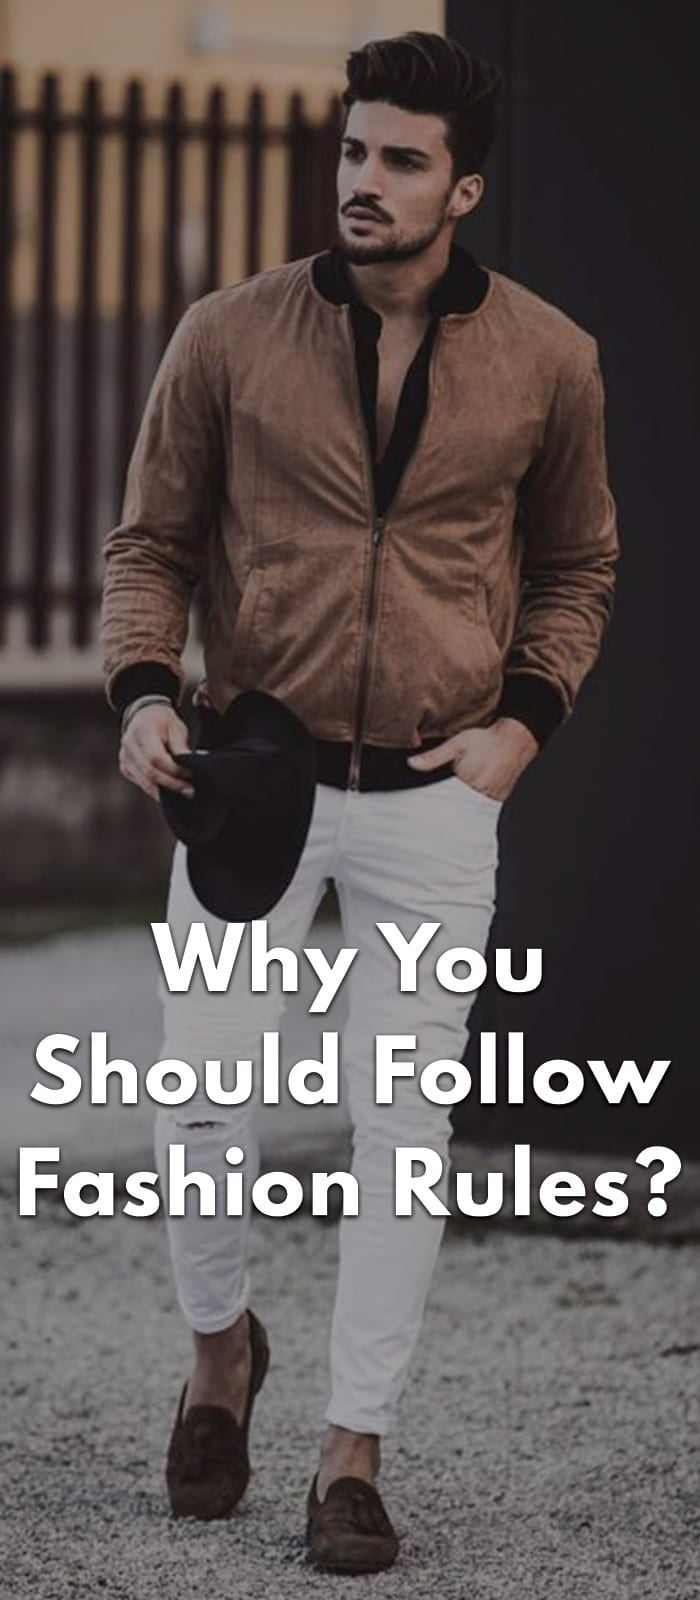 Why-You-Should-Follow-Fashion-Rules